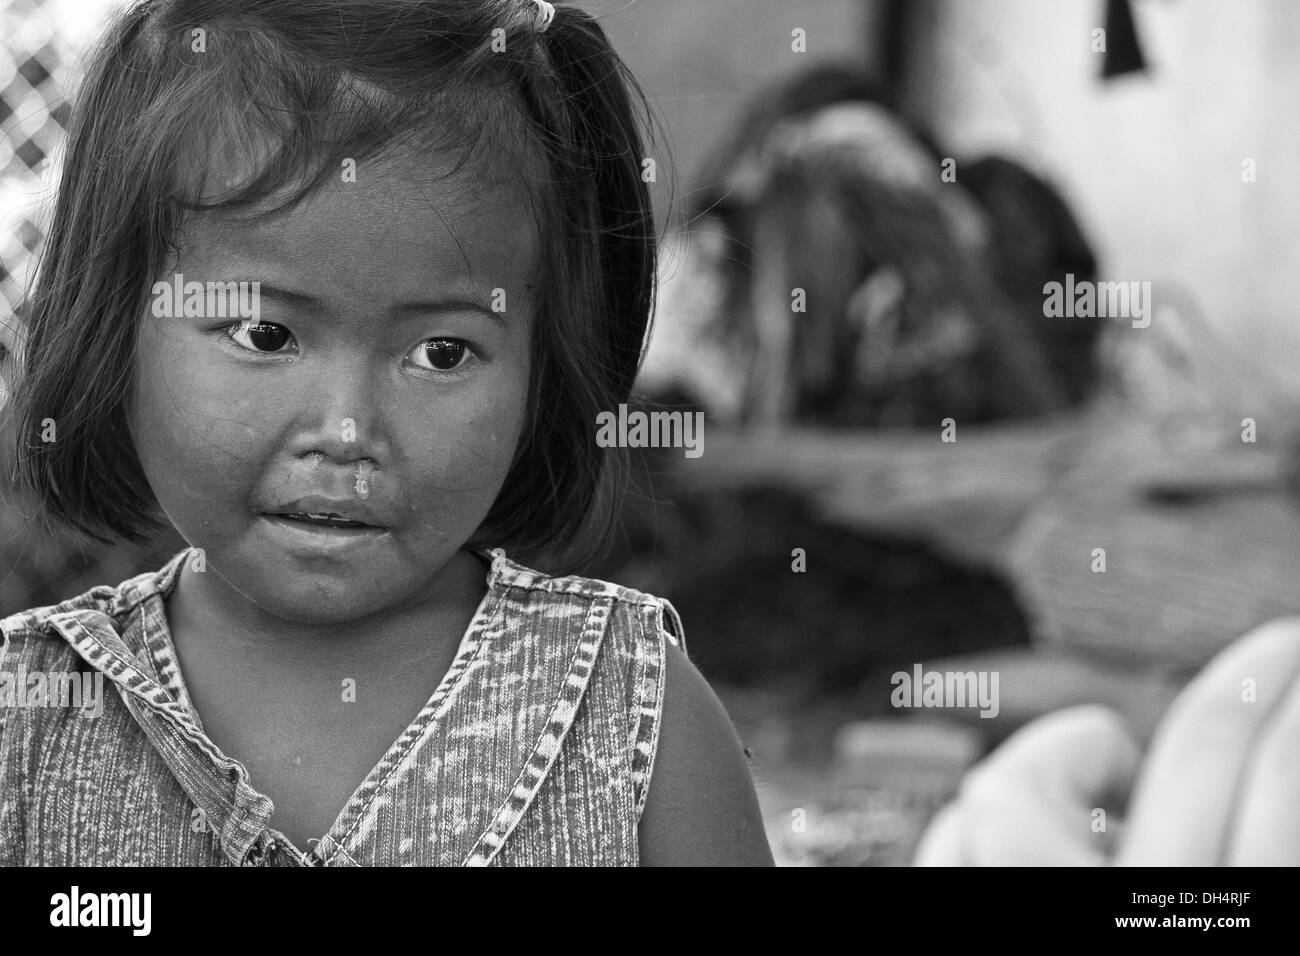 Vietnamese girl with a runny nose. - Stock Image